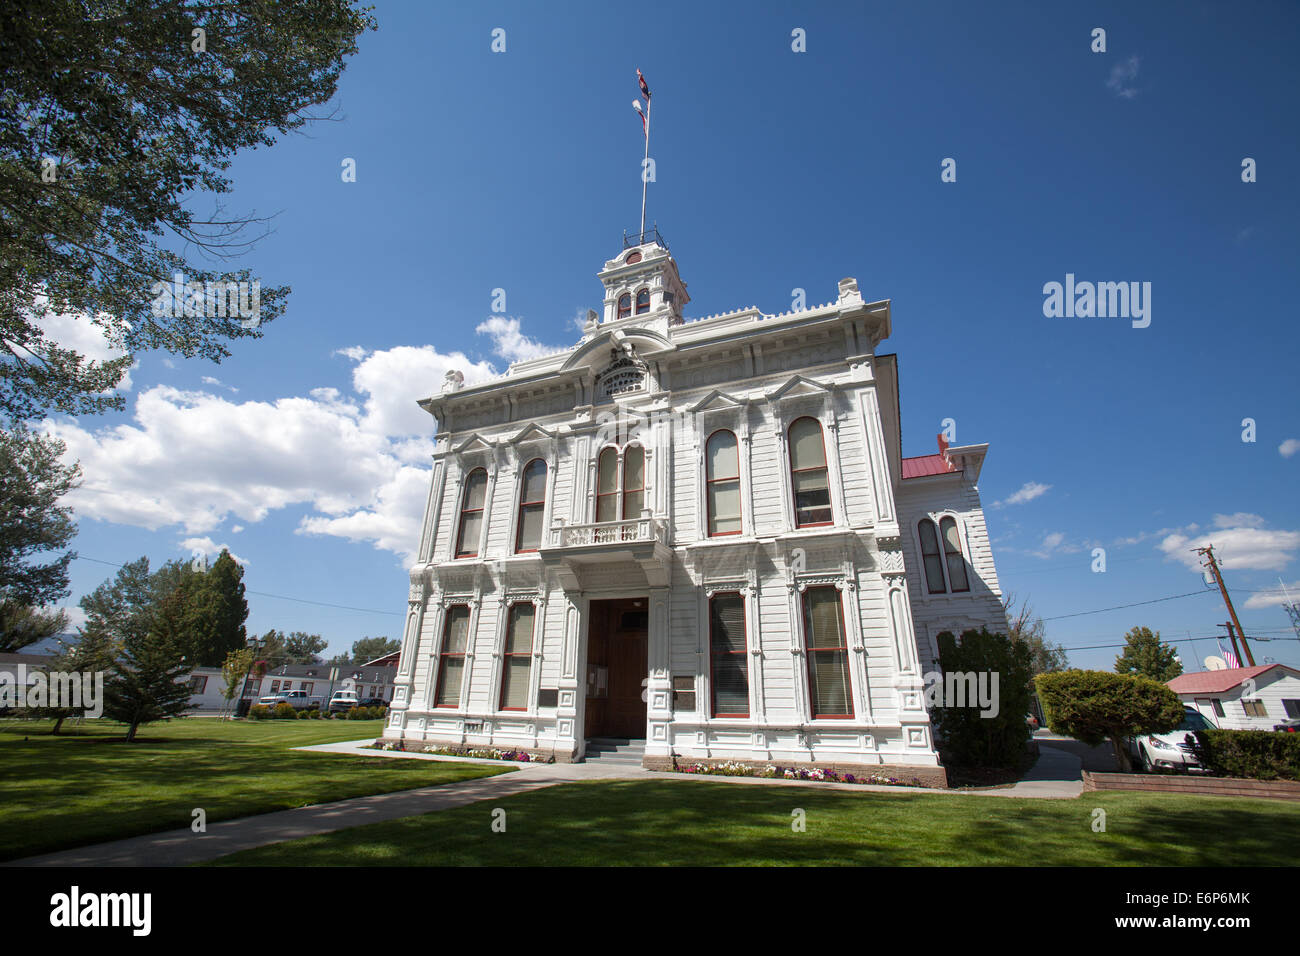 The Mono County Courthouse in Bridgeport, California. Built in 1880 in the Italianate-style and designed by J. R. - Stock Image